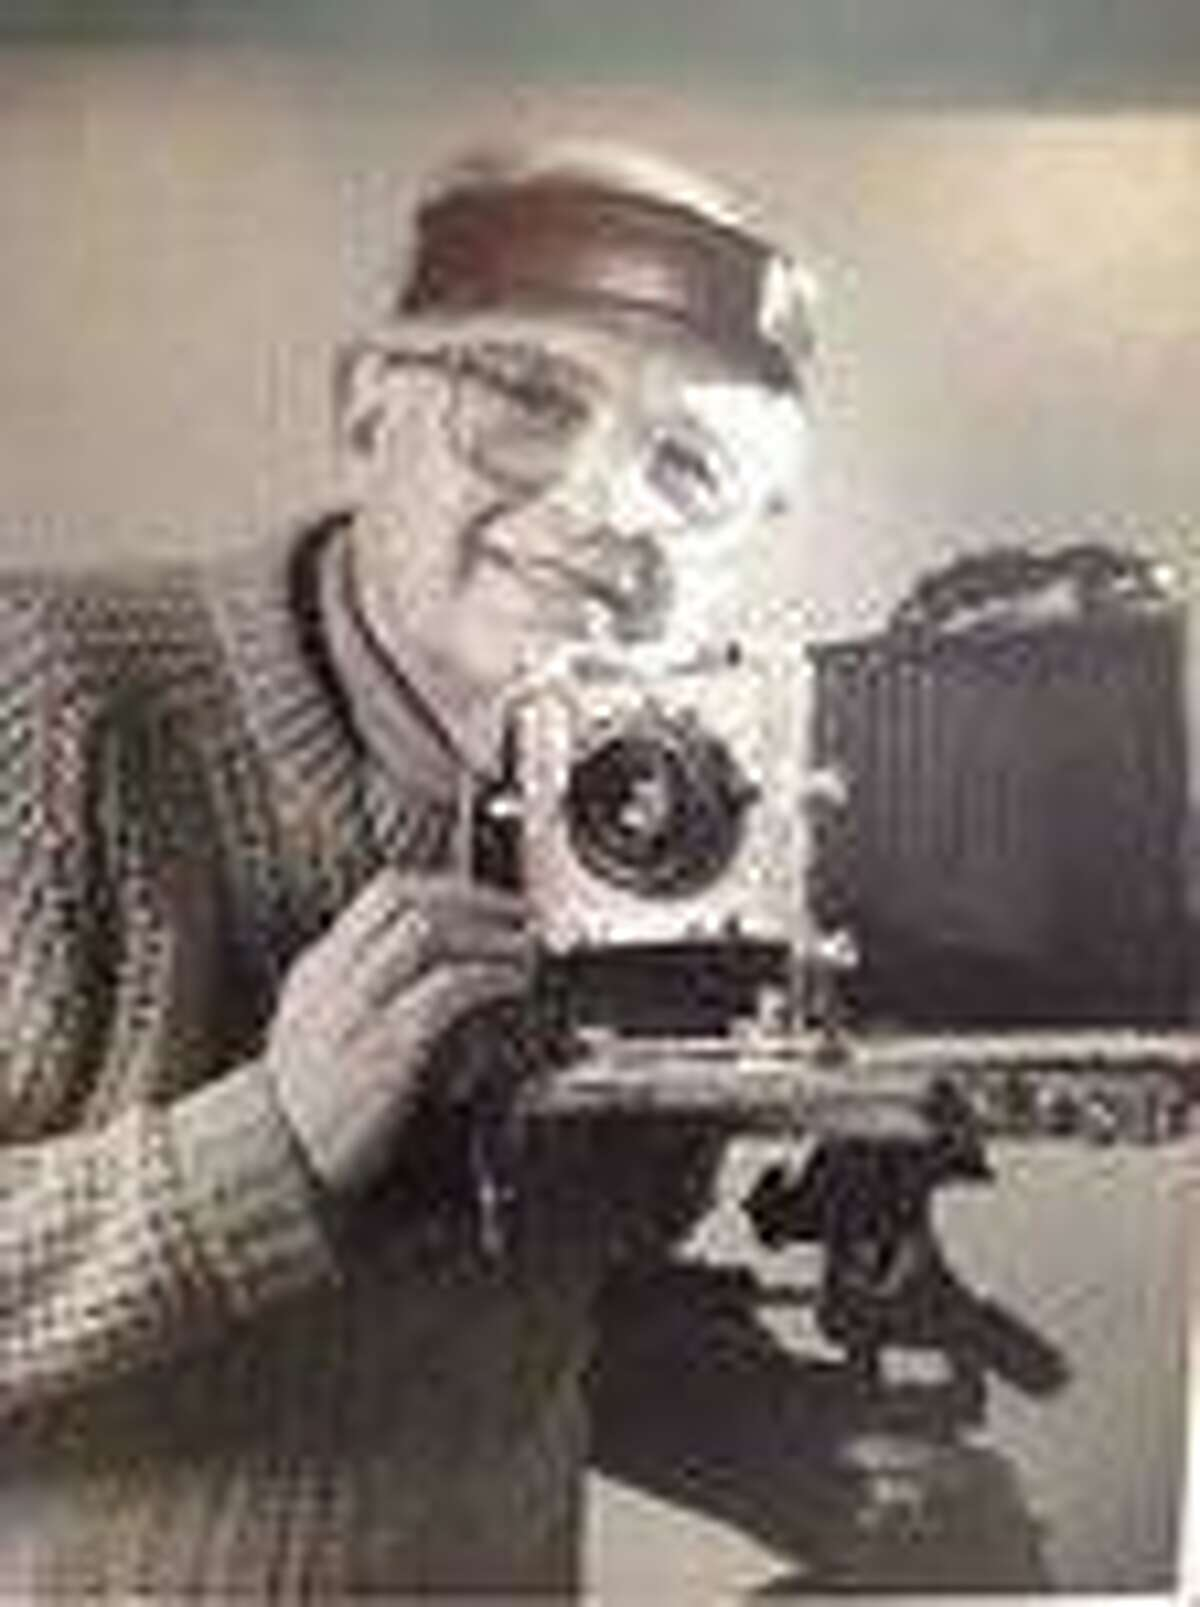 Harry Cohen was a supporter of the arts, including theater and photography, in the New Milford community. Cohen is shown above with one of his cameras.